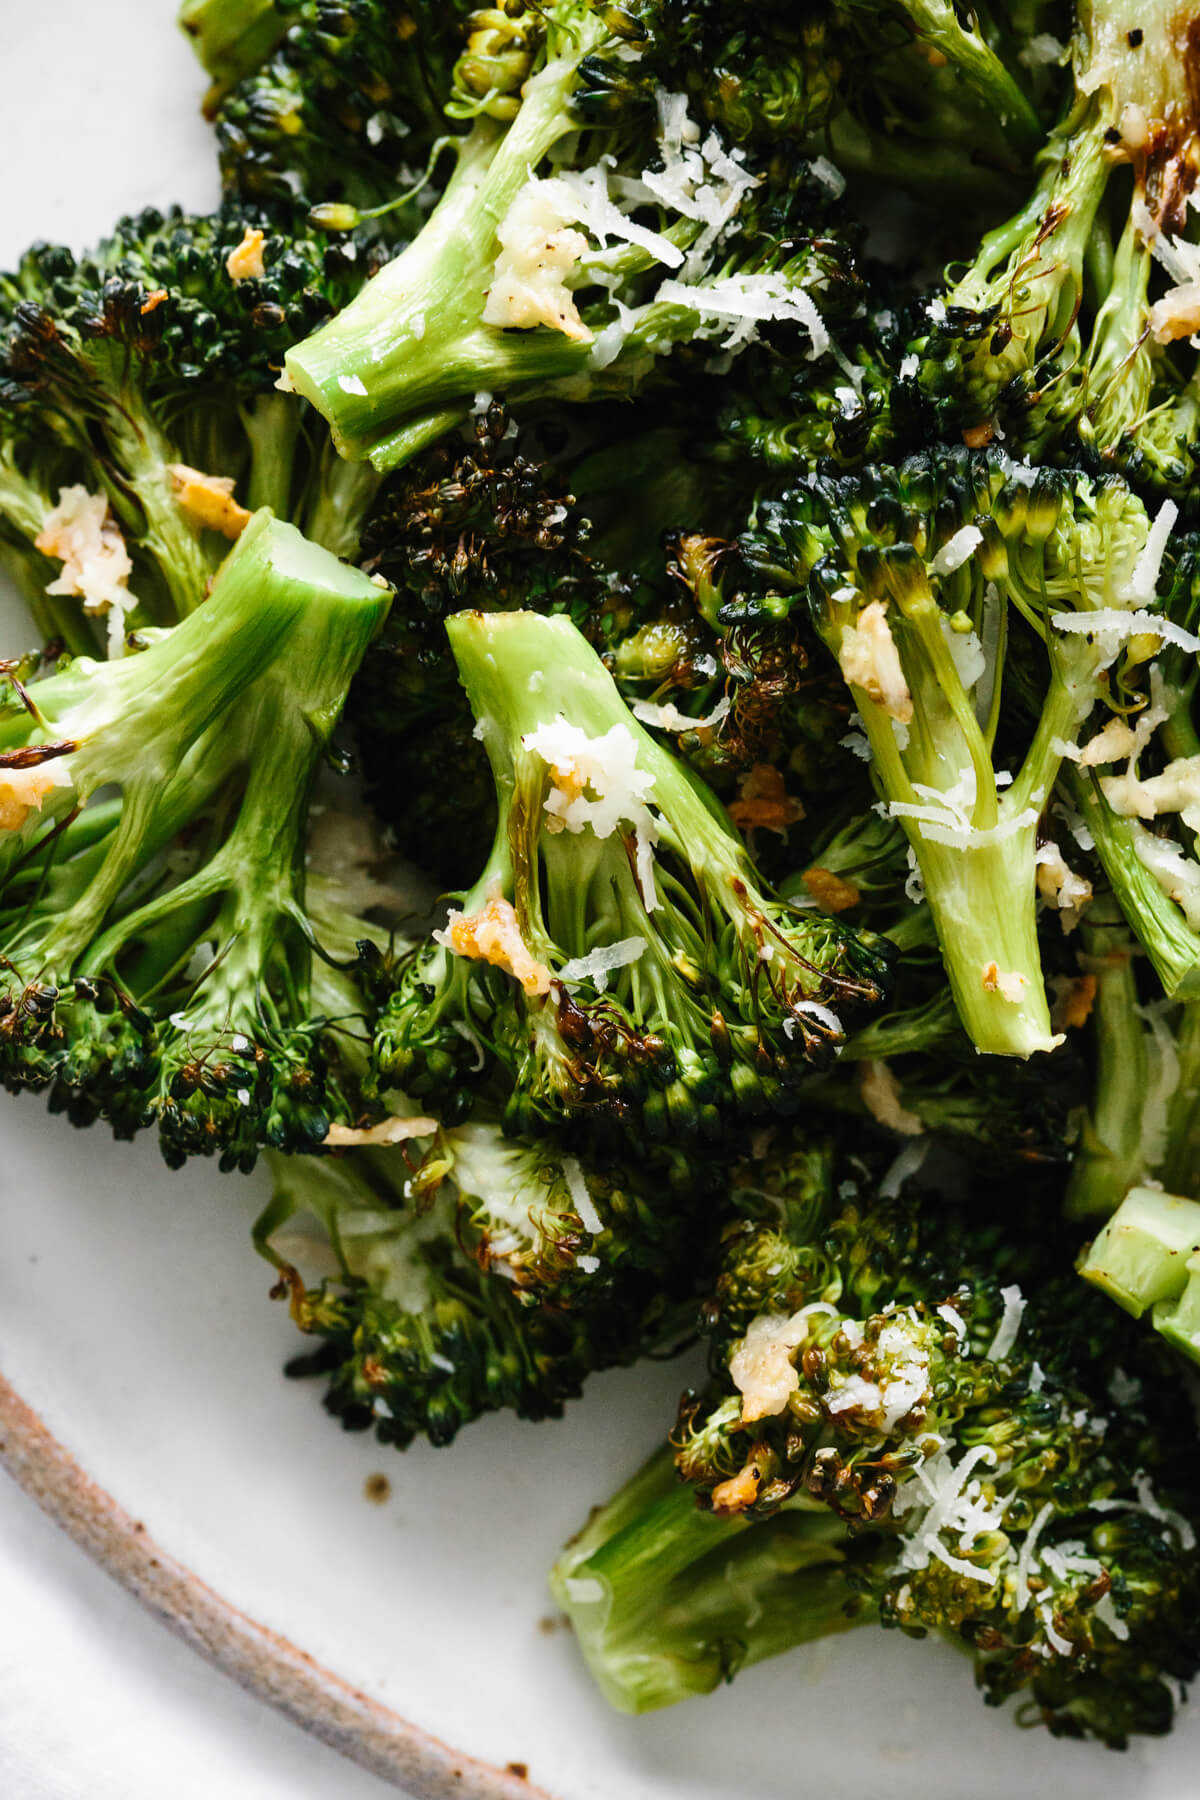 Roasted broccoli piled on a plate.